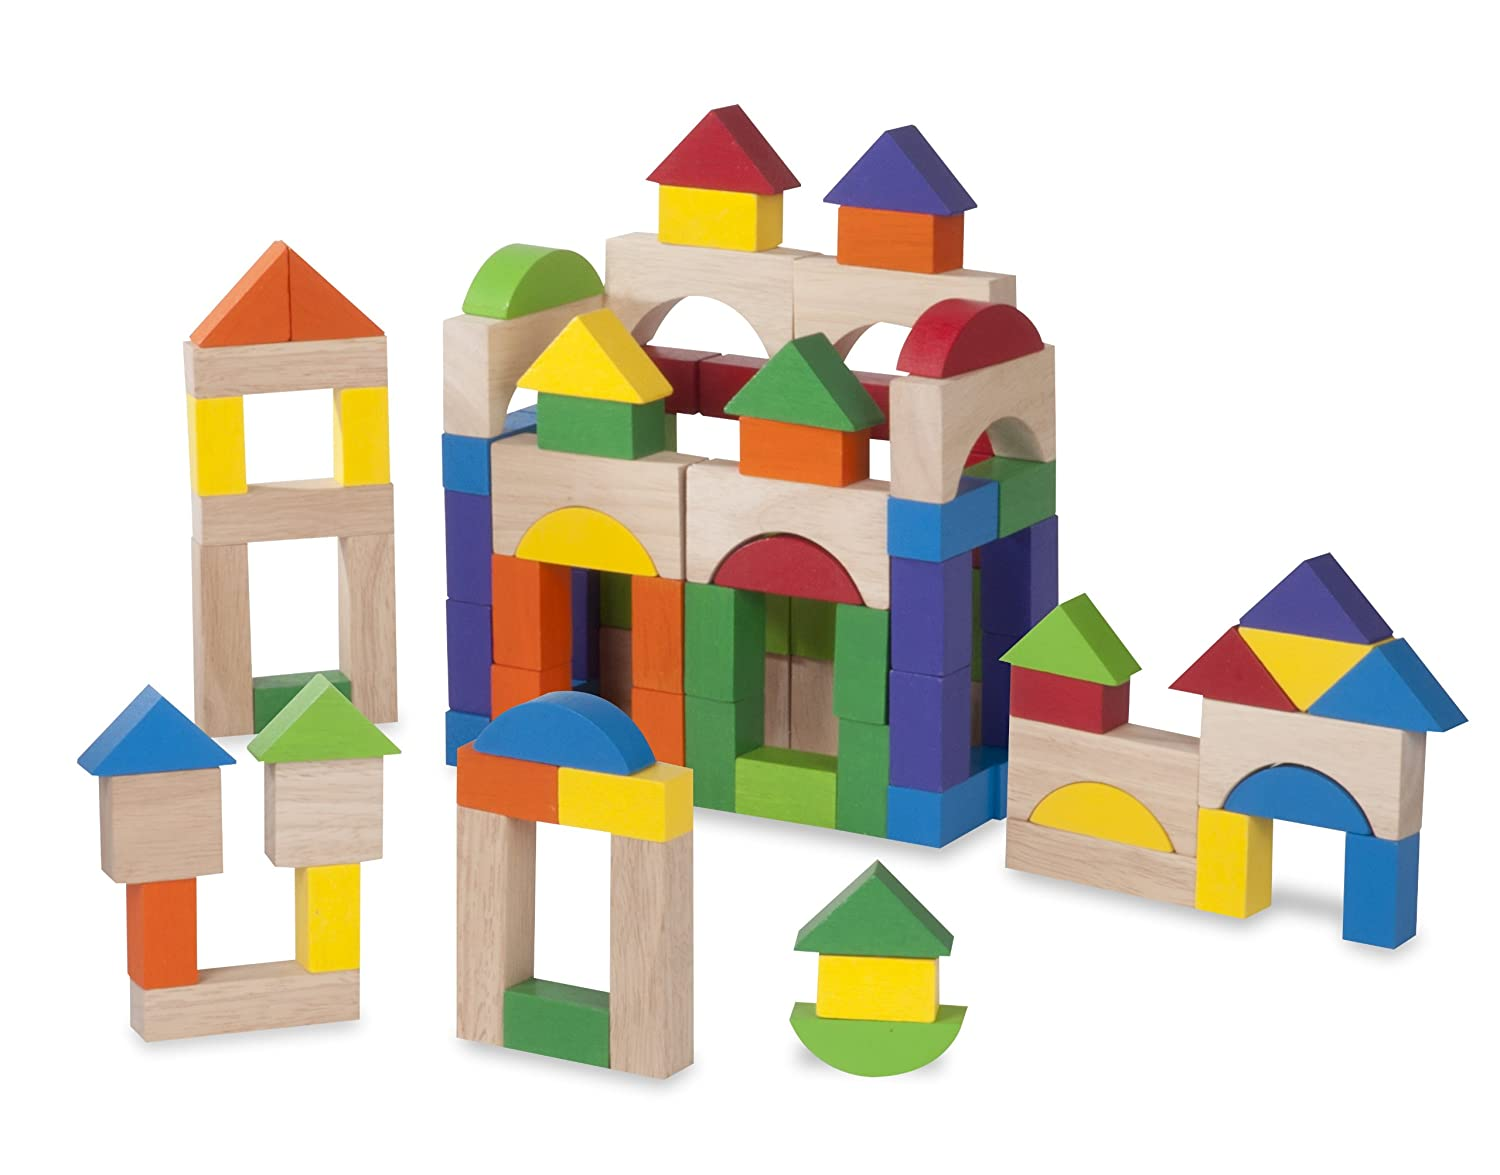 Wonderworld 100 Piece Block Set - Basic Building, Includes All Shapes, Colors Toy Set